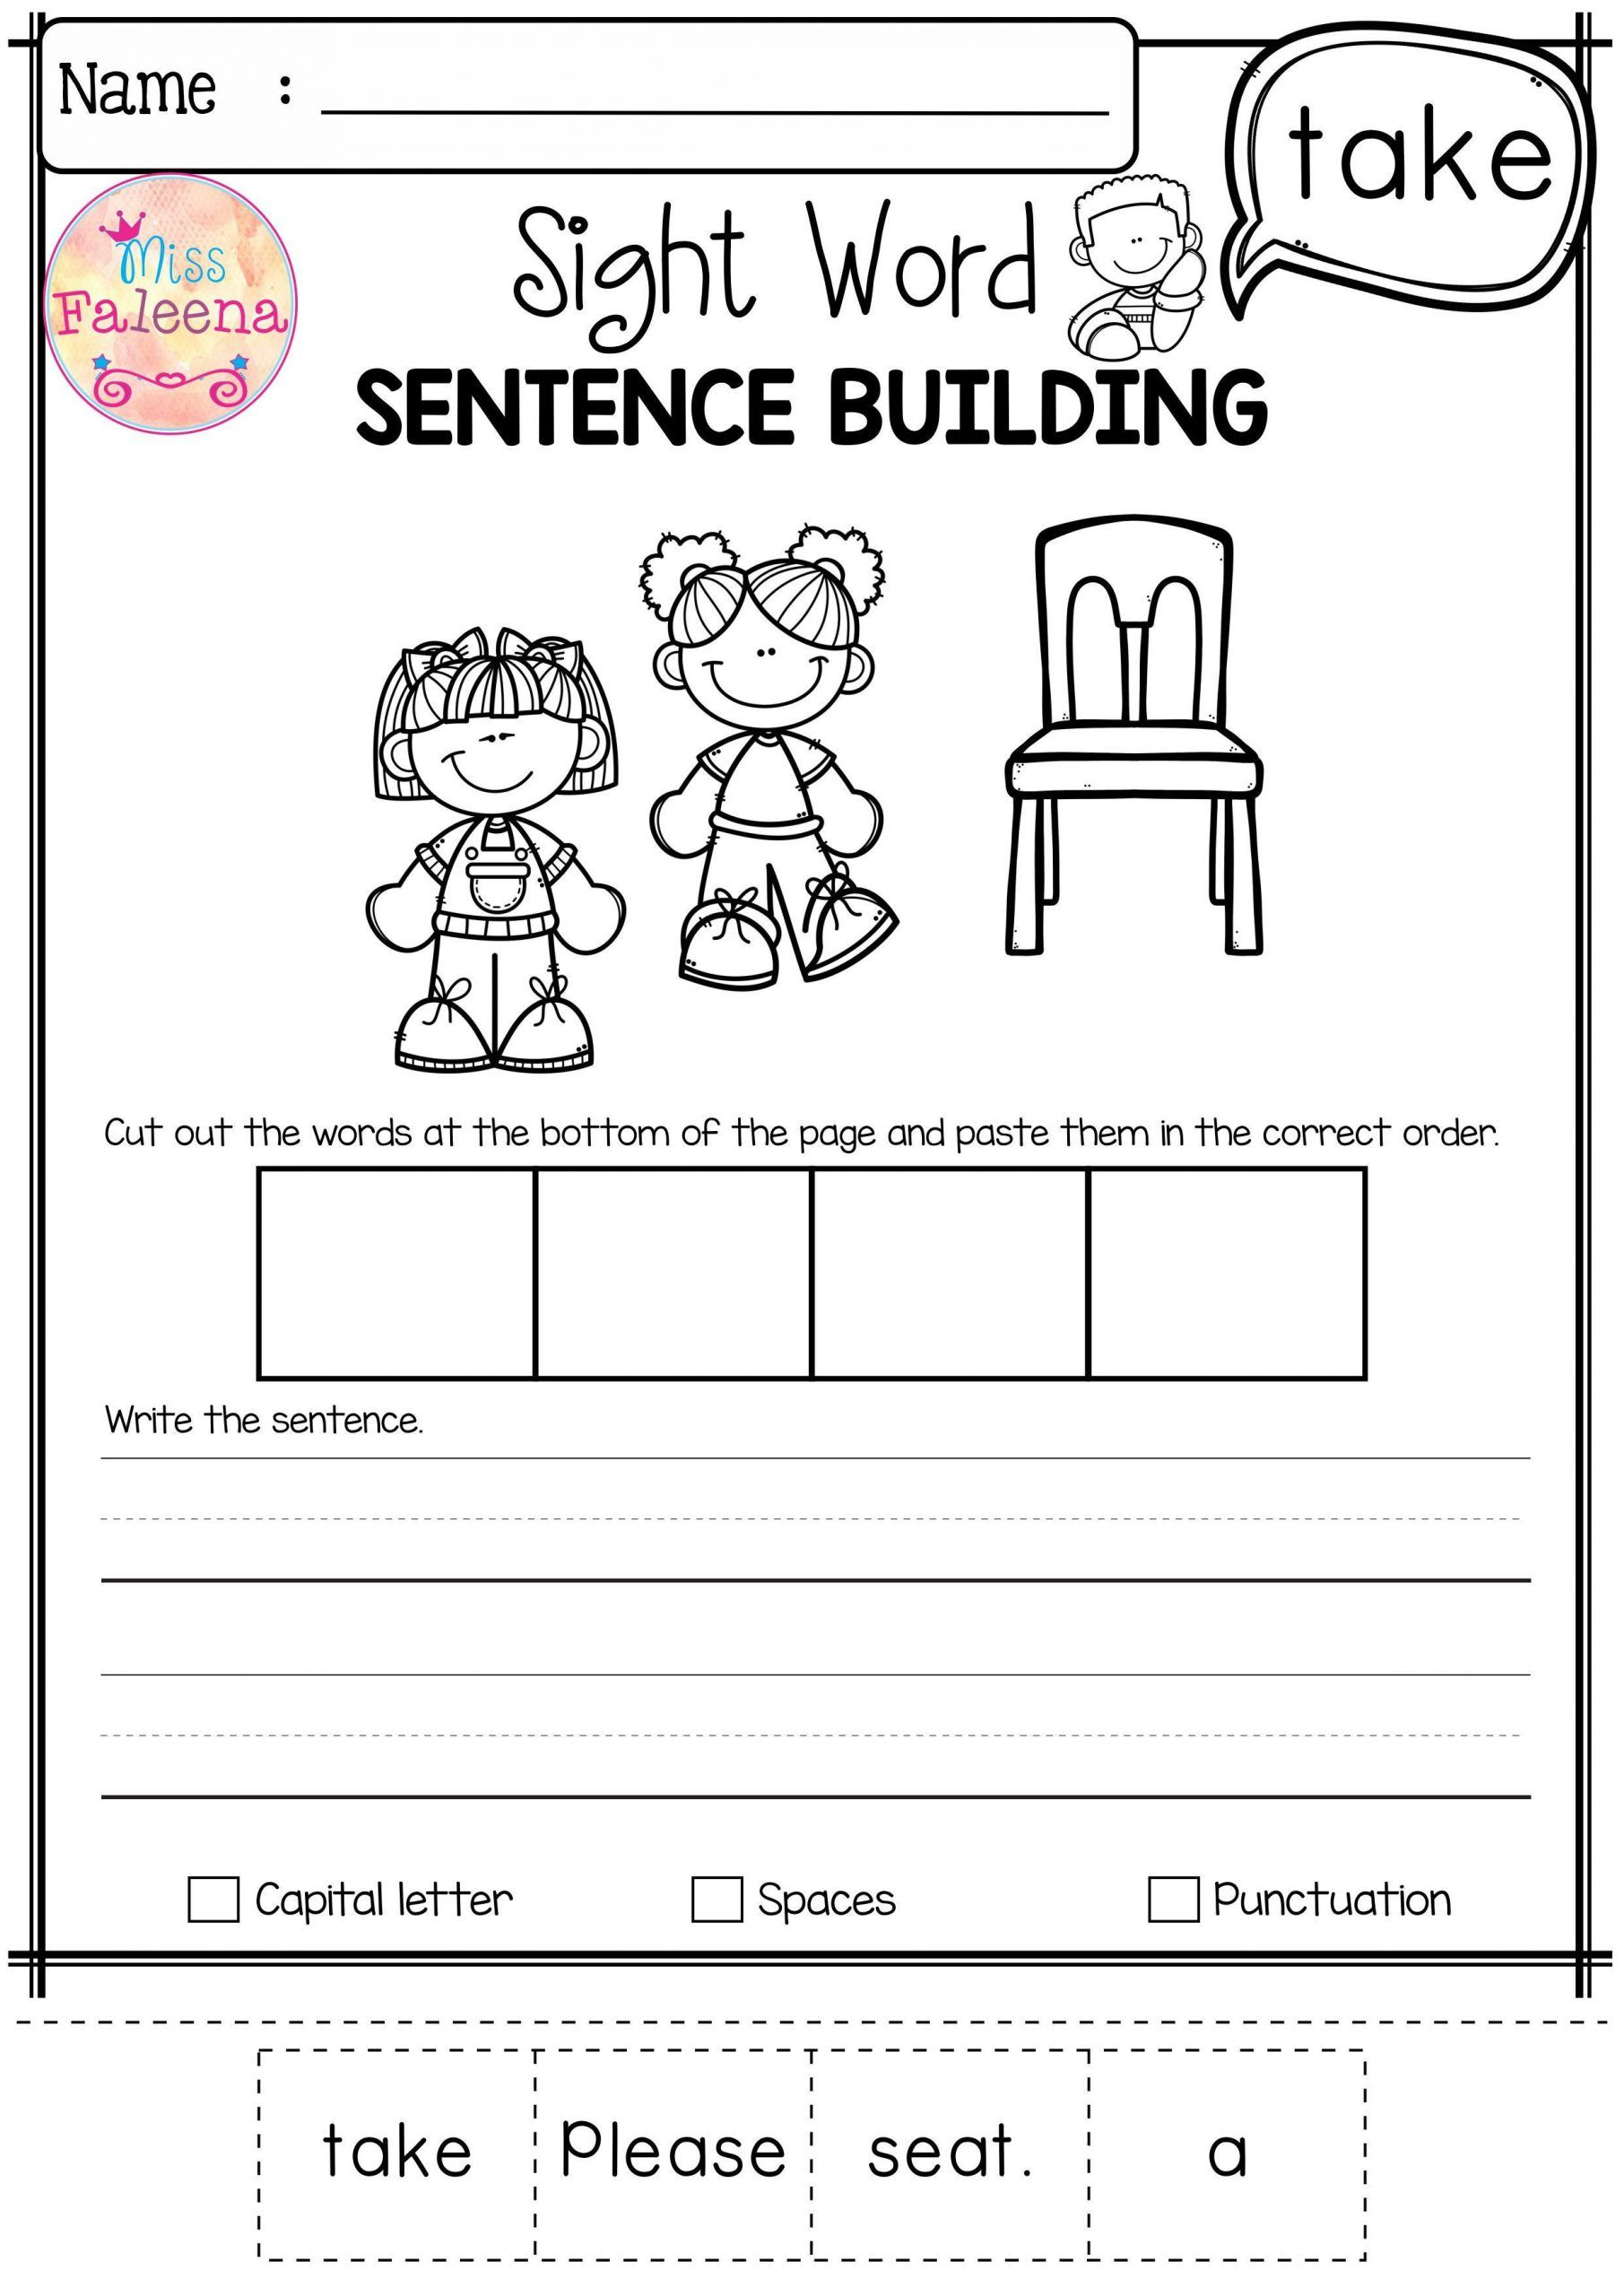 Sentence Building Worksheets For Kindergarten In